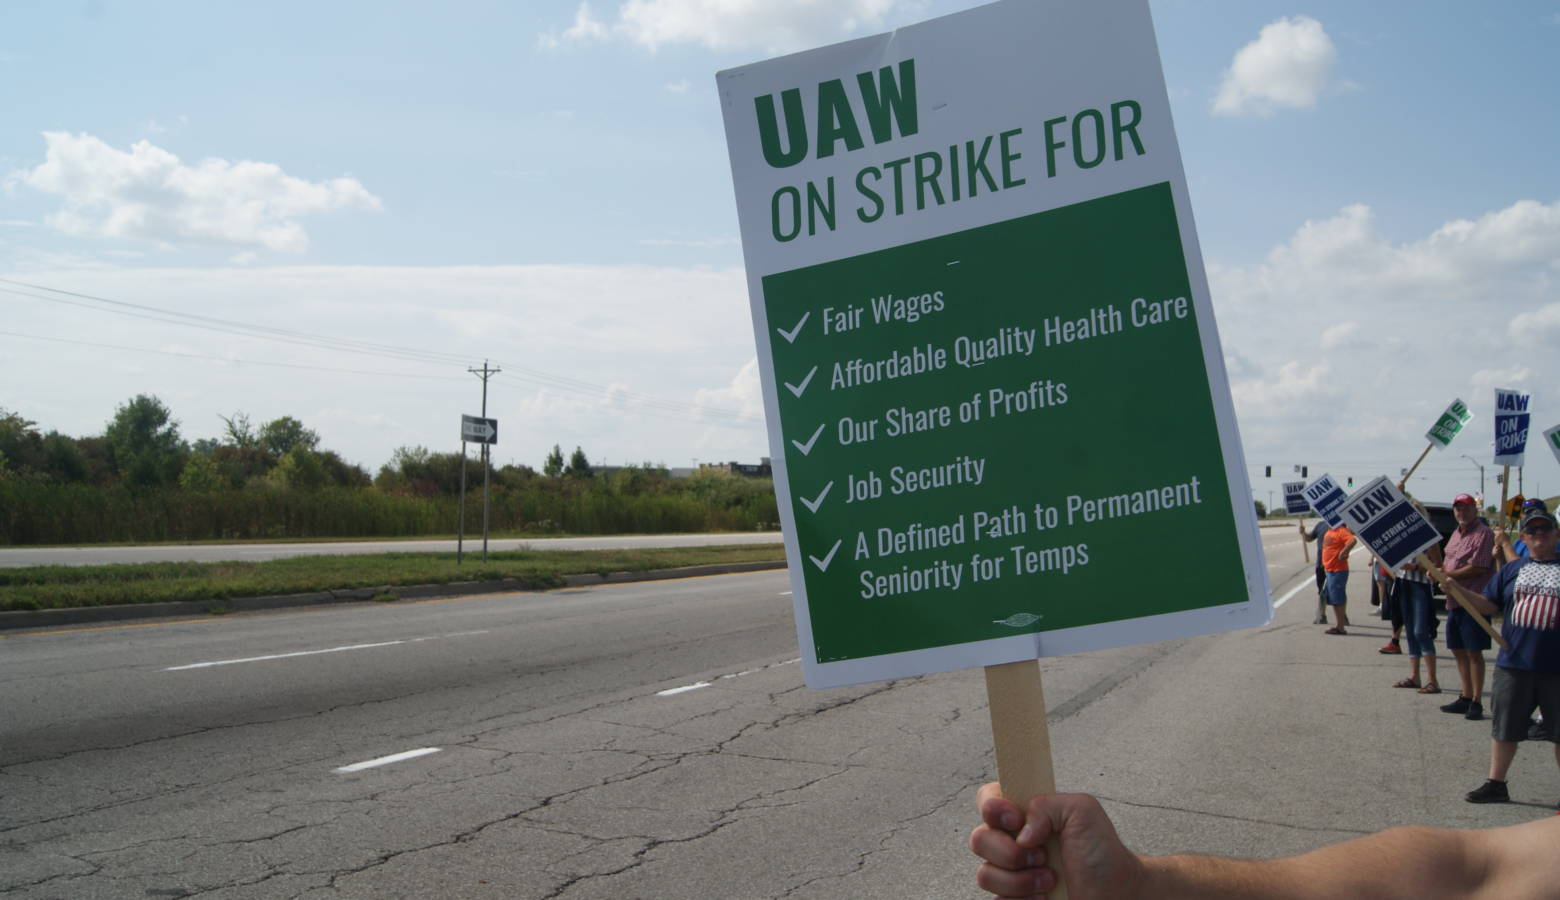 UAW Local 2209 members and supporters picket outside General Motors Fort Wayne Assembly plant. (Samantha Horton/IPB News)